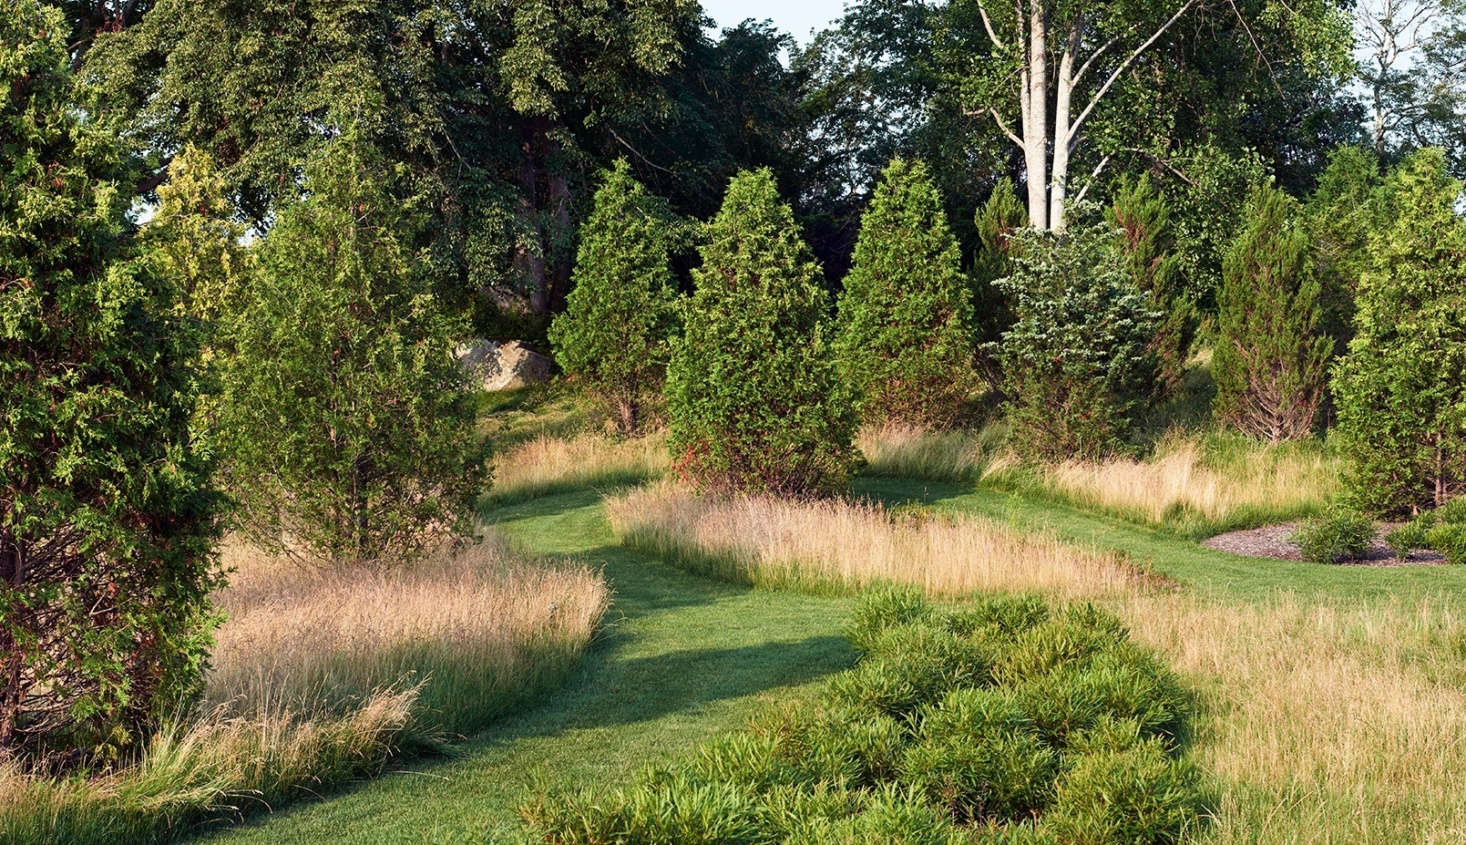 Beyond the evergreens that shelter the Blue Garden are native grasslands with mown paths. Photograph by Millicent Harvey.